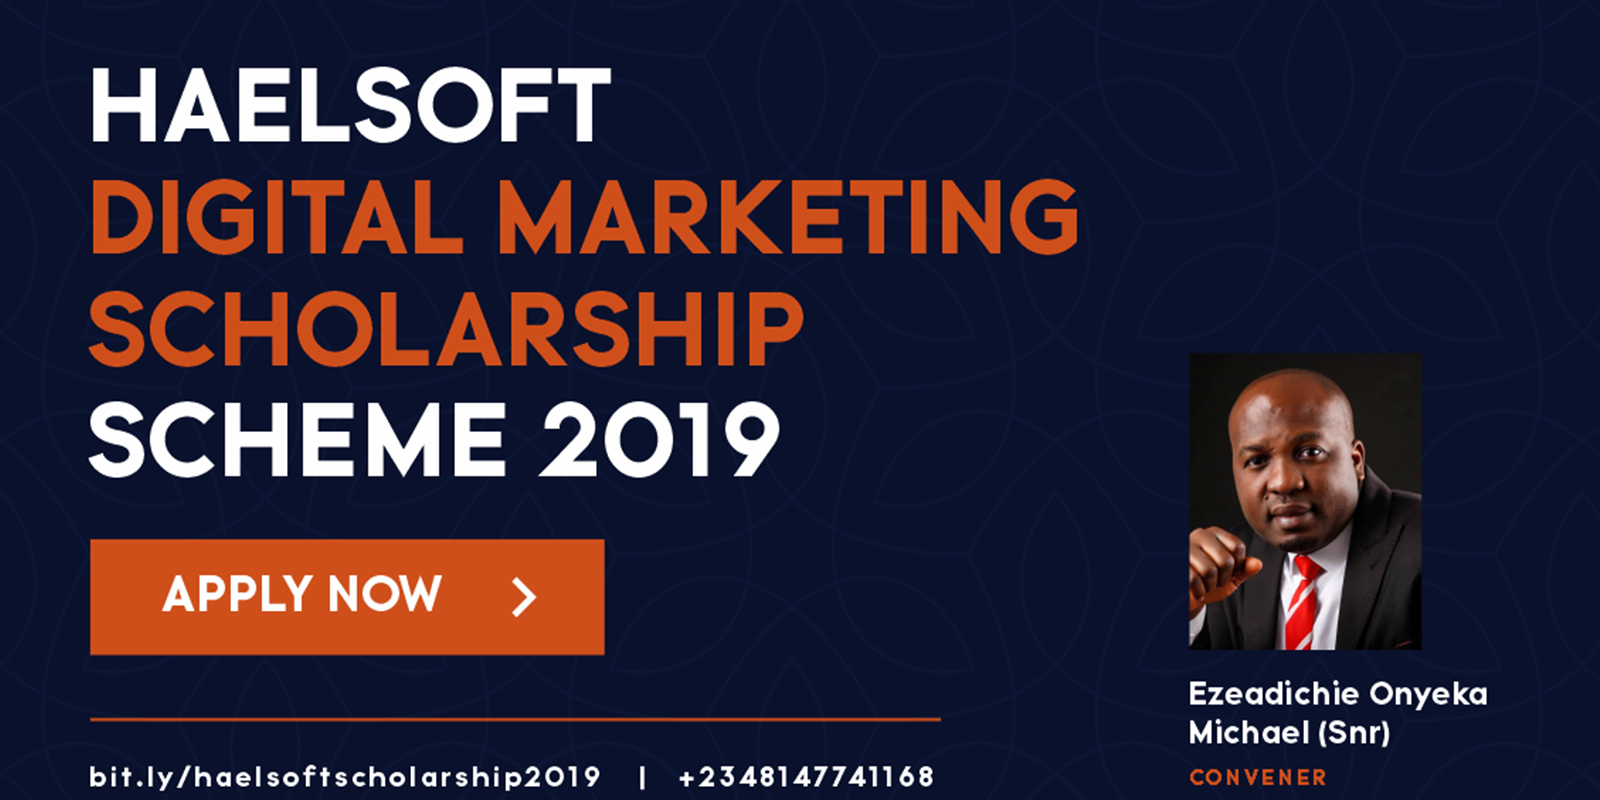 Haelsoft-Digital-Marketing-Scholarship